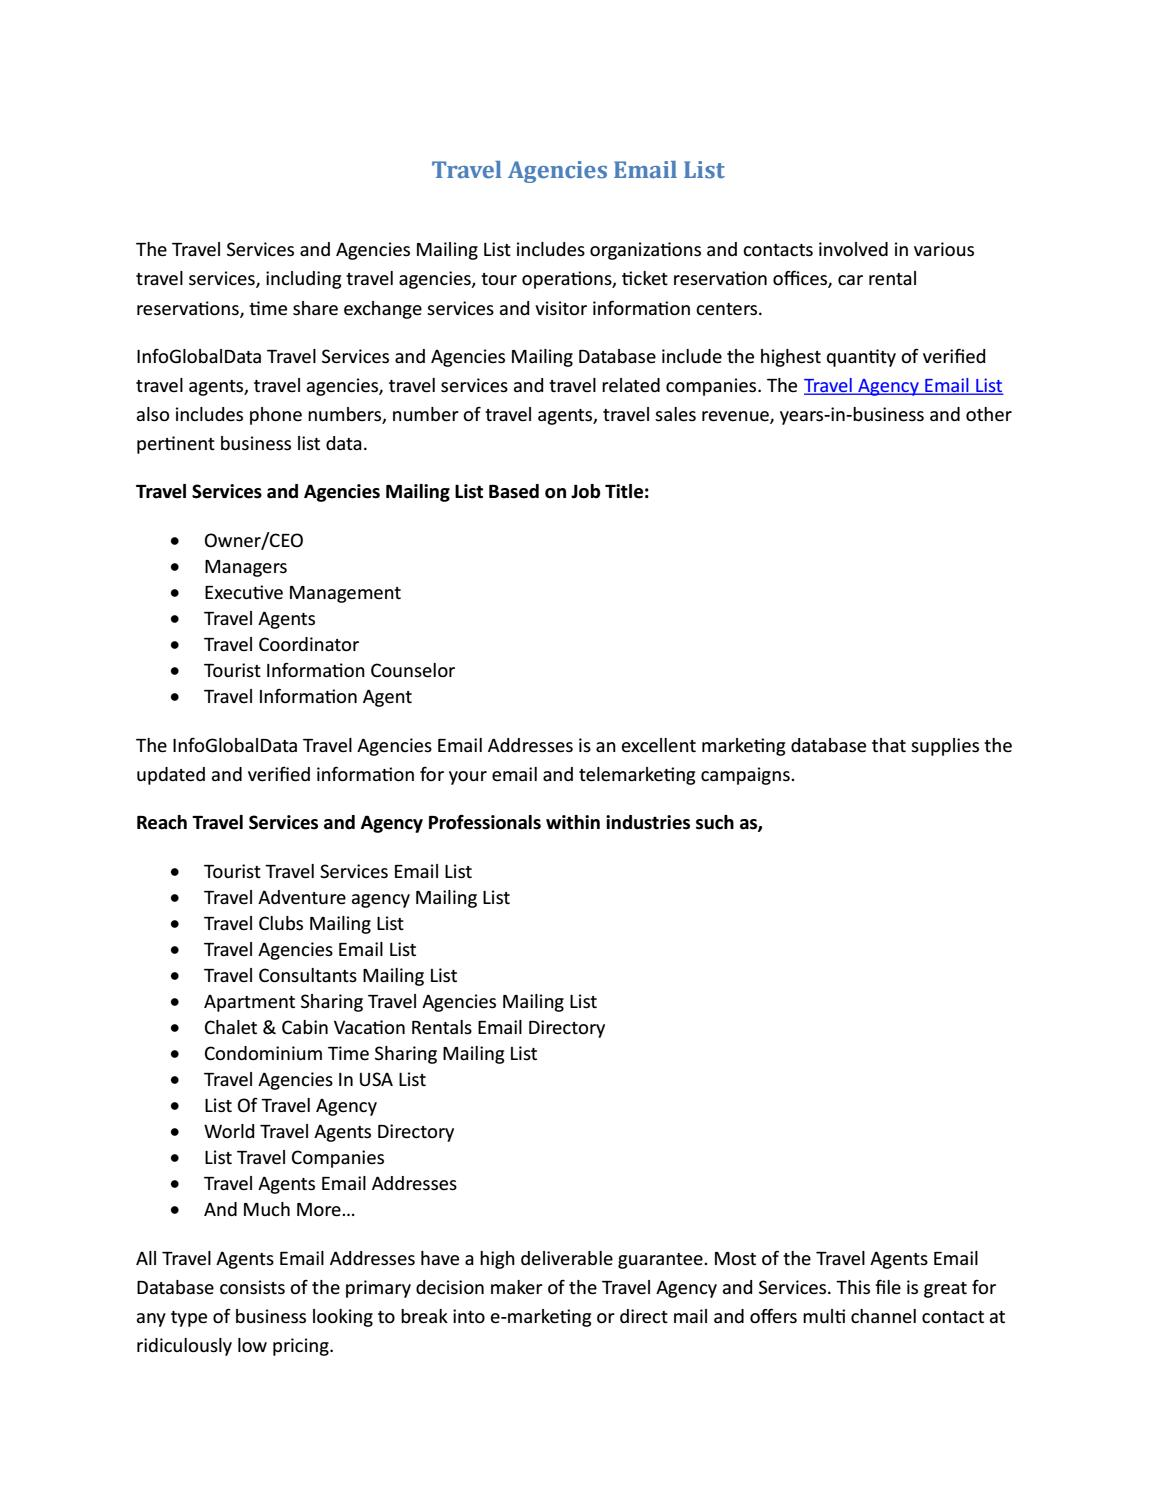 Travel Agencies Email List by william - issuu